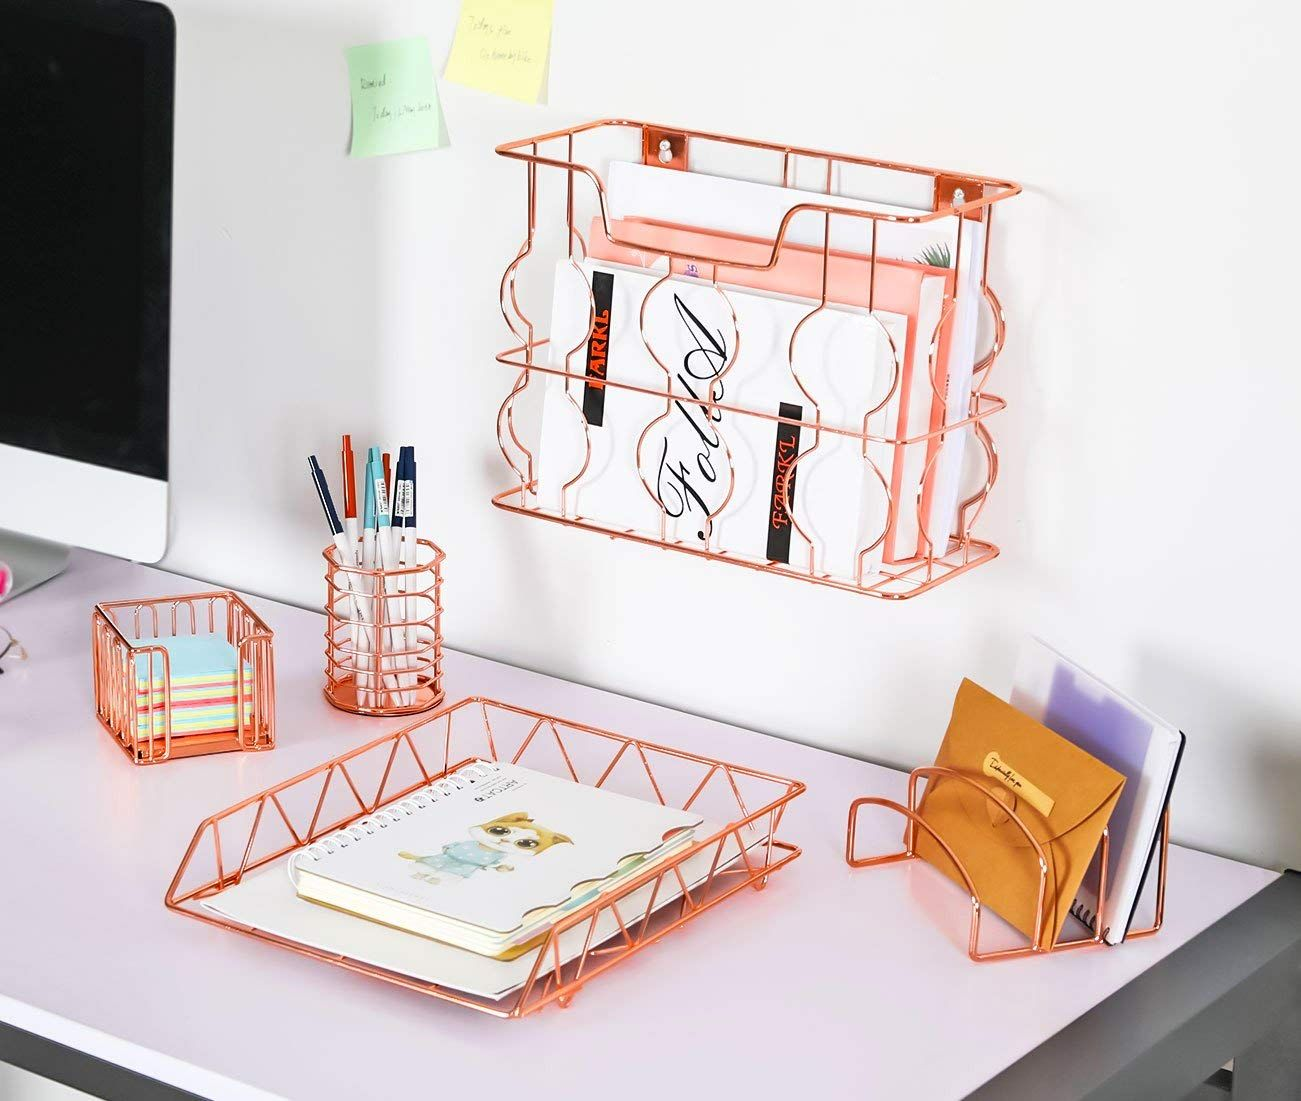 Pag Rose Gold Office Supplies 5 In 1 Metal Desk Organizer Set Hanging File Organizer File Tray Le Desk Organizer Set Gold Office Supplies Desk Organization